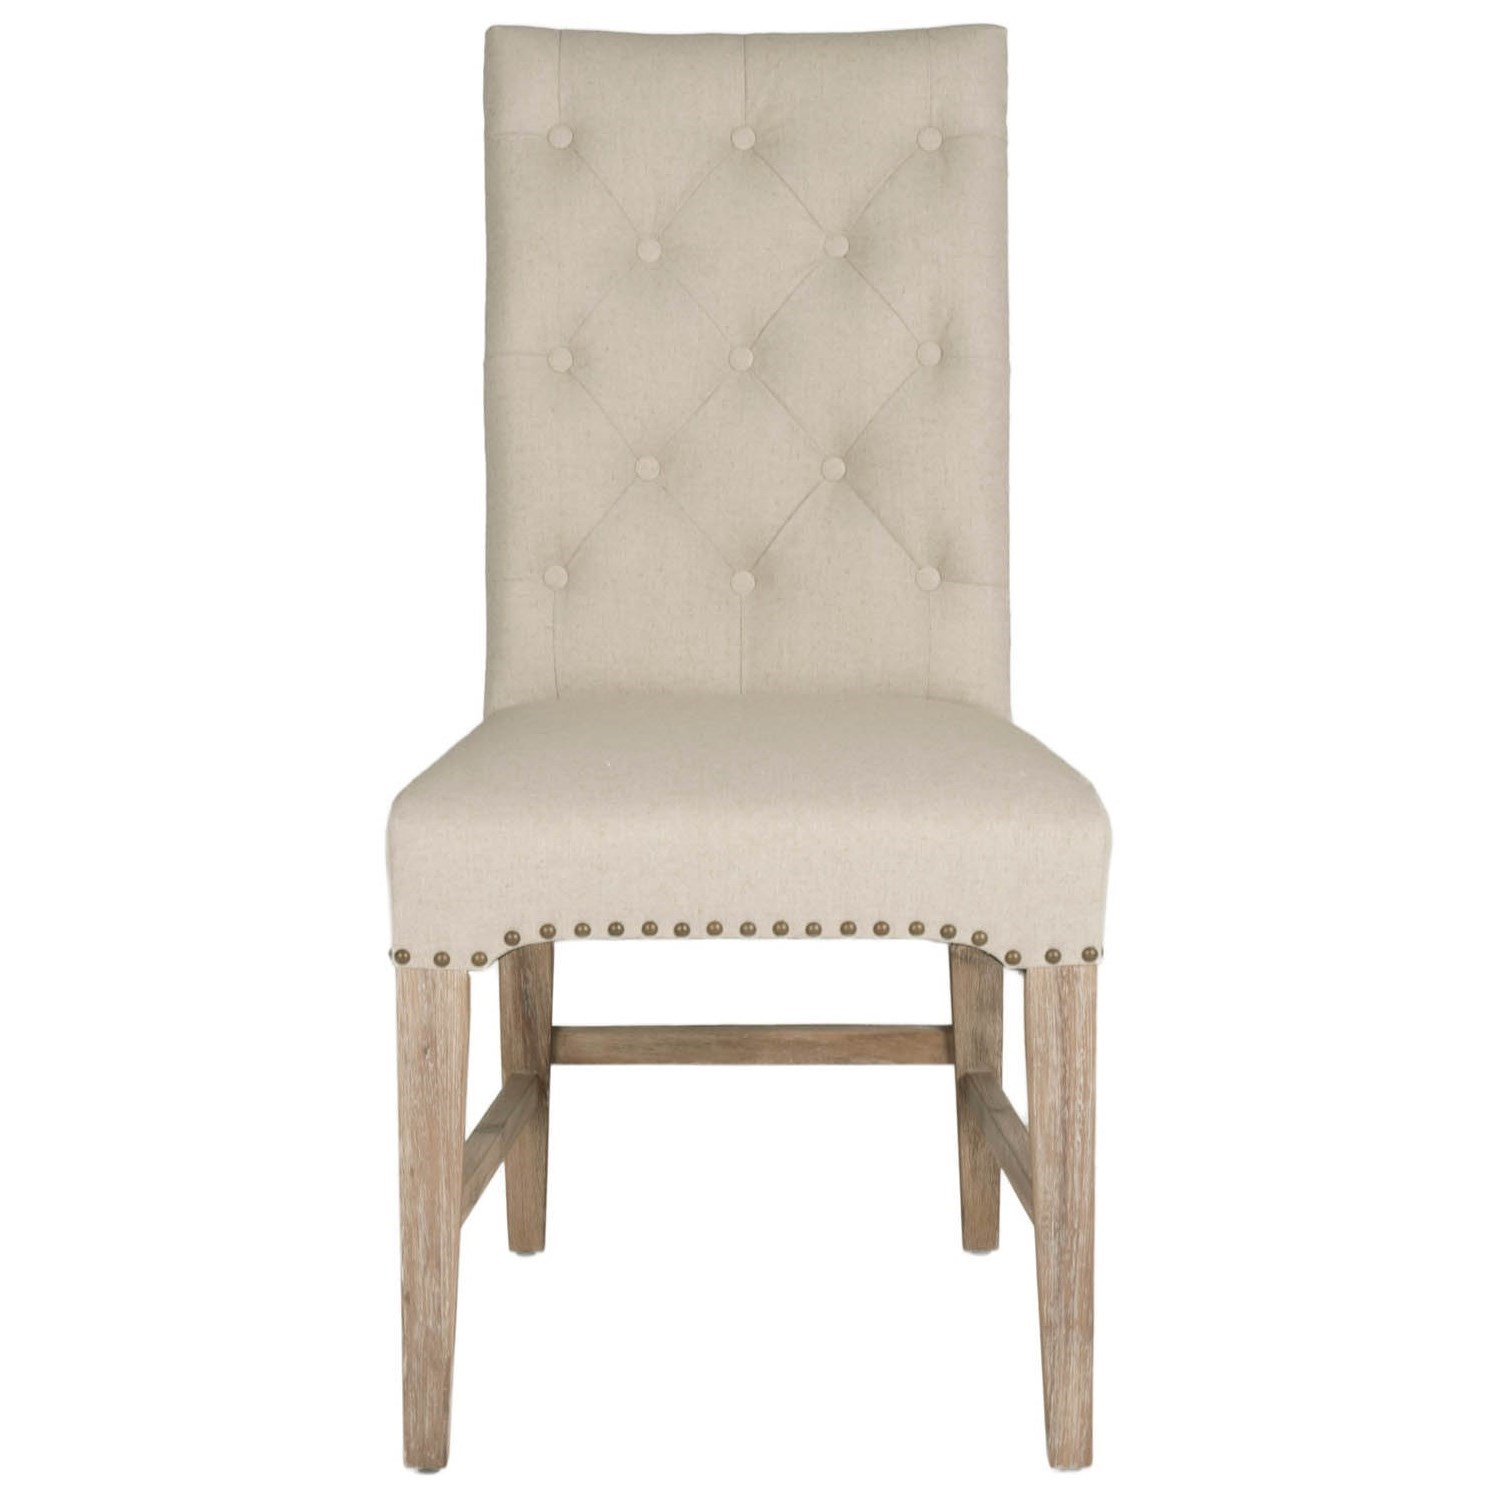 Traditions Wilshire Dining Chair by Orient Express Furniture at Baer's Furniture